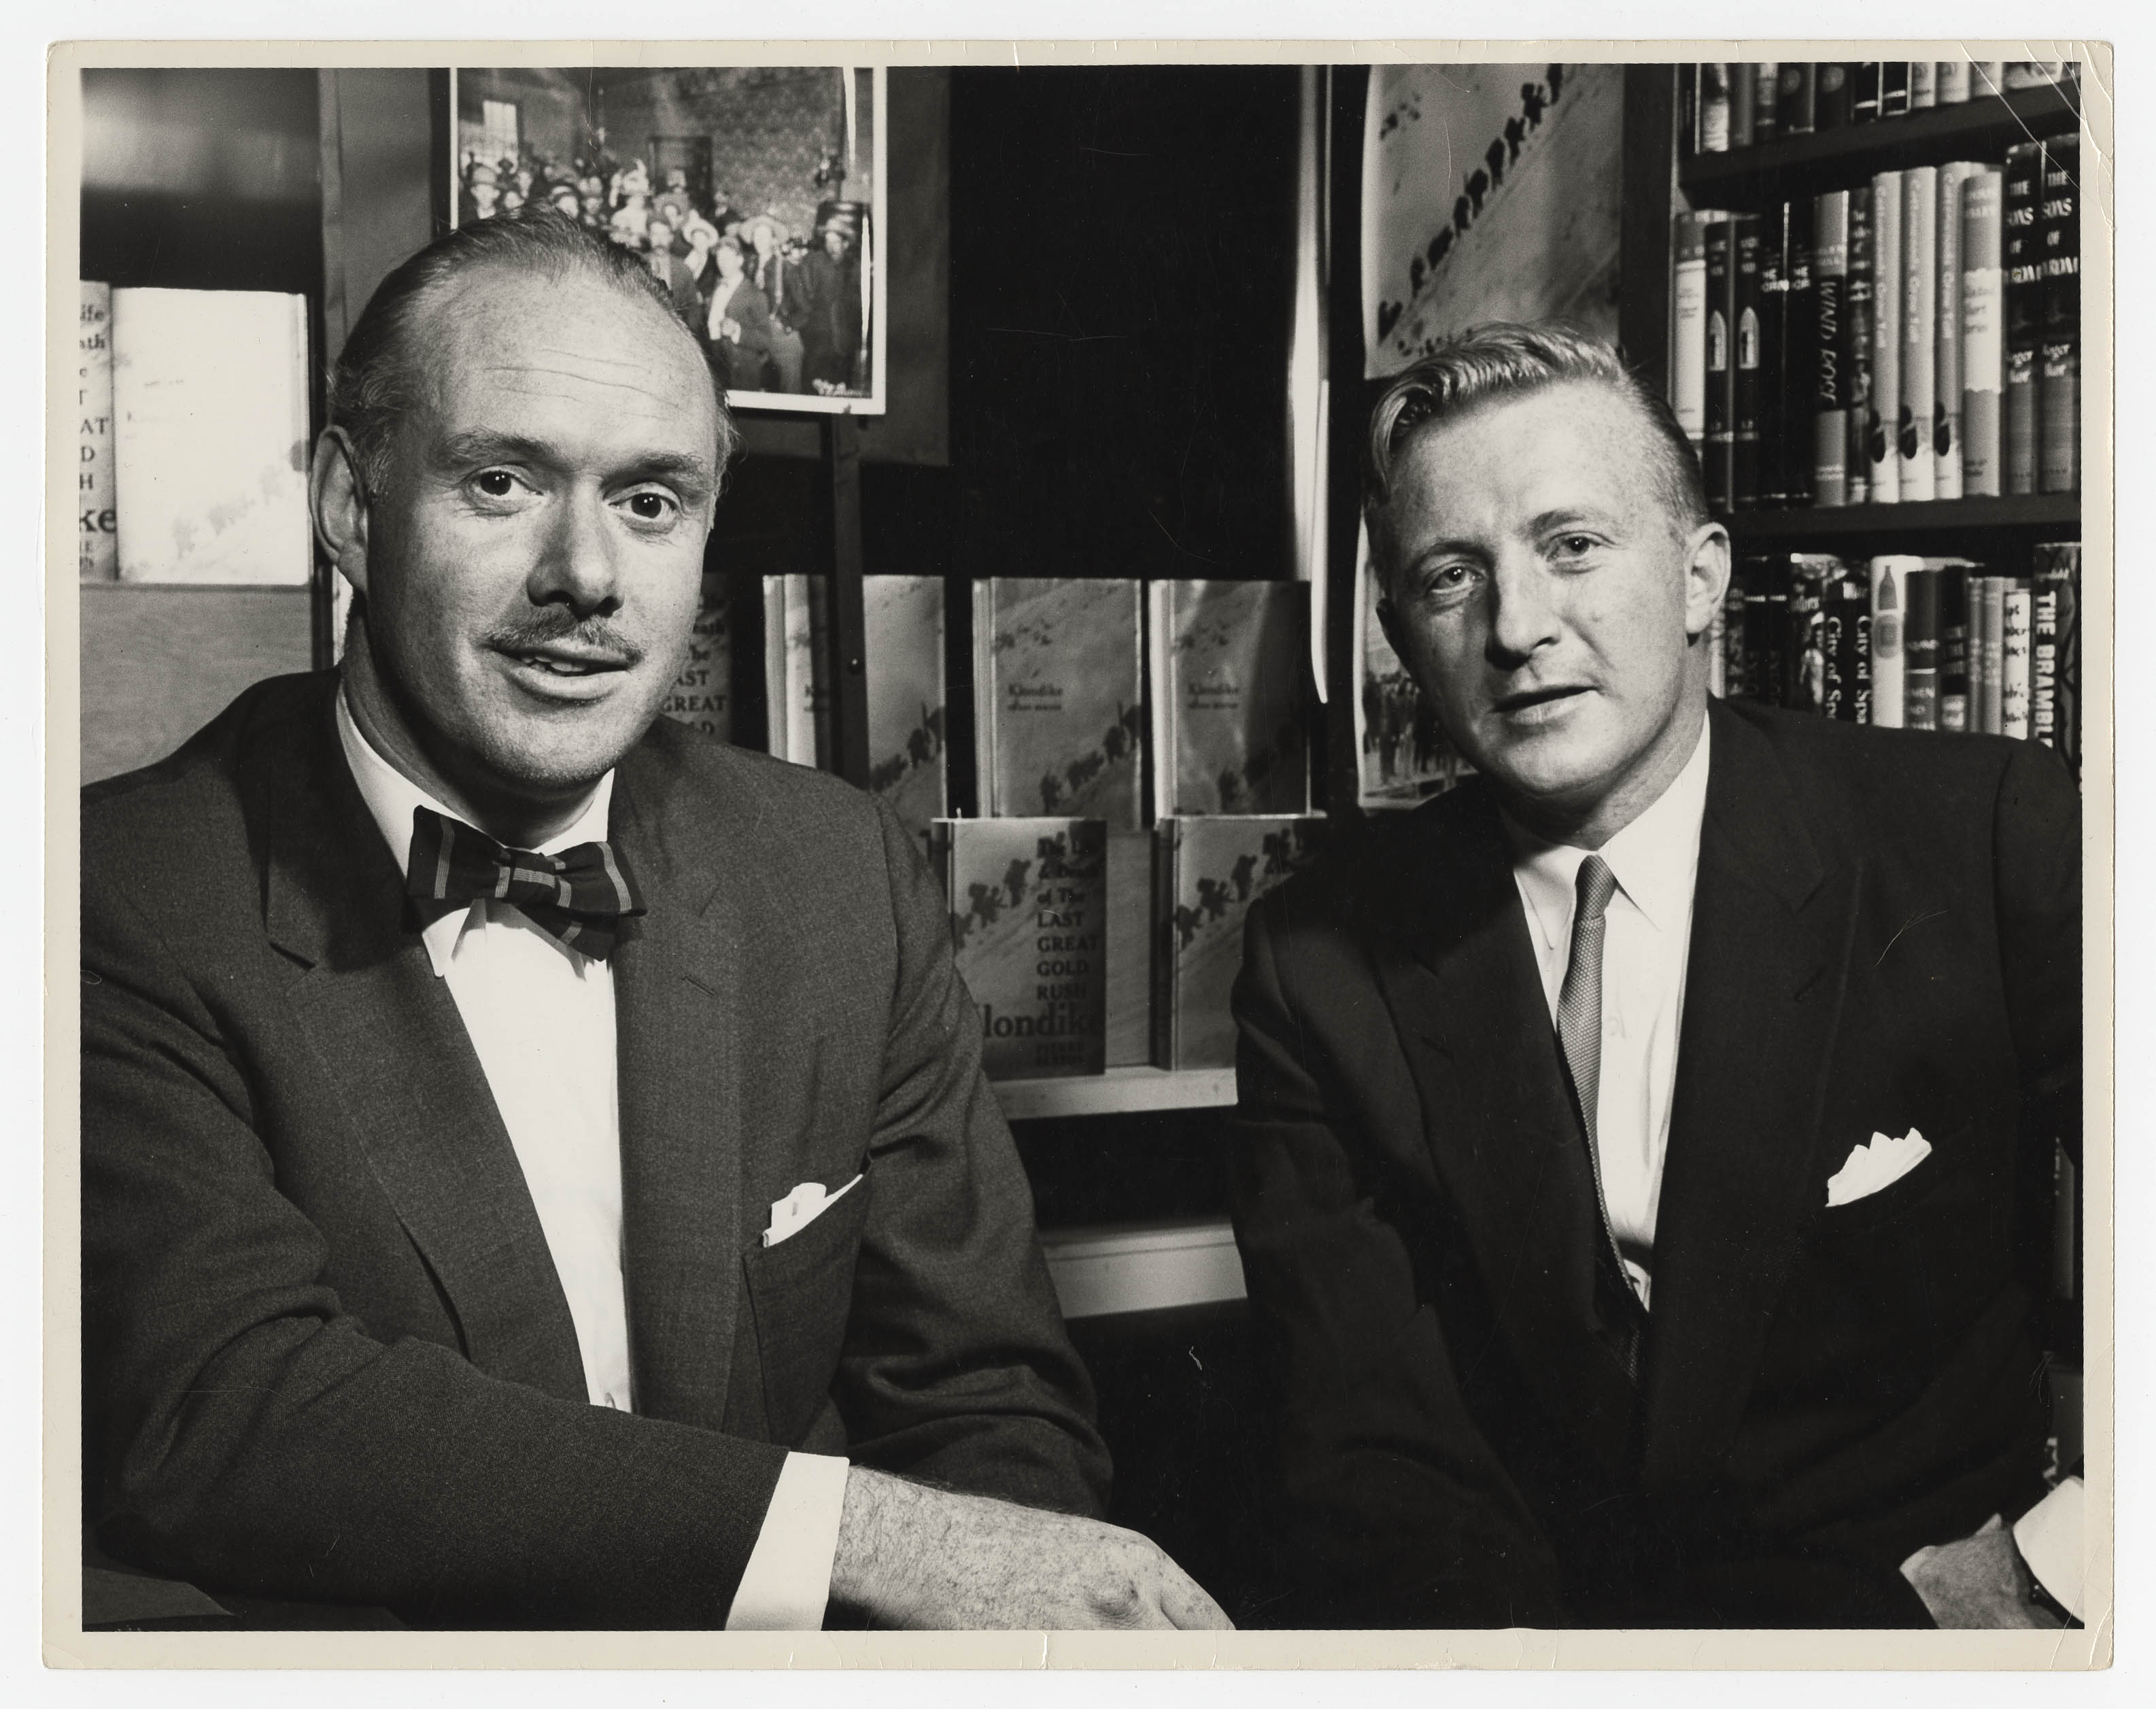 Black and white, two men in suits